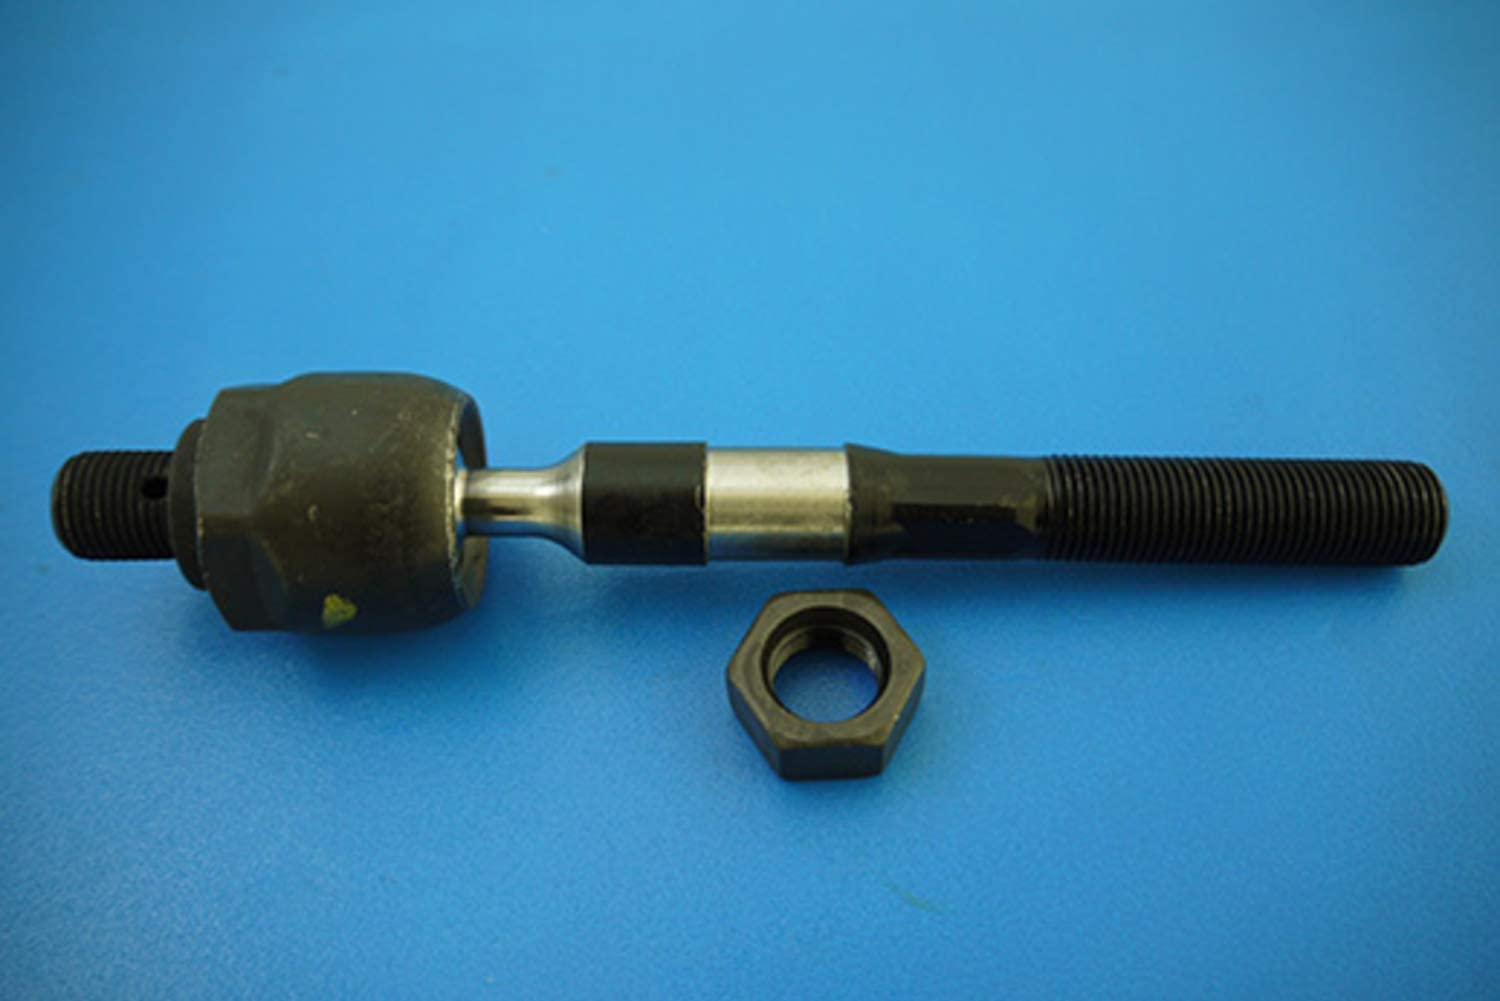 2009 Fits Hyundai Sonata Front Inner Steering Tie Rod End With Five Years Warranty Package include One Tie Rod End Only